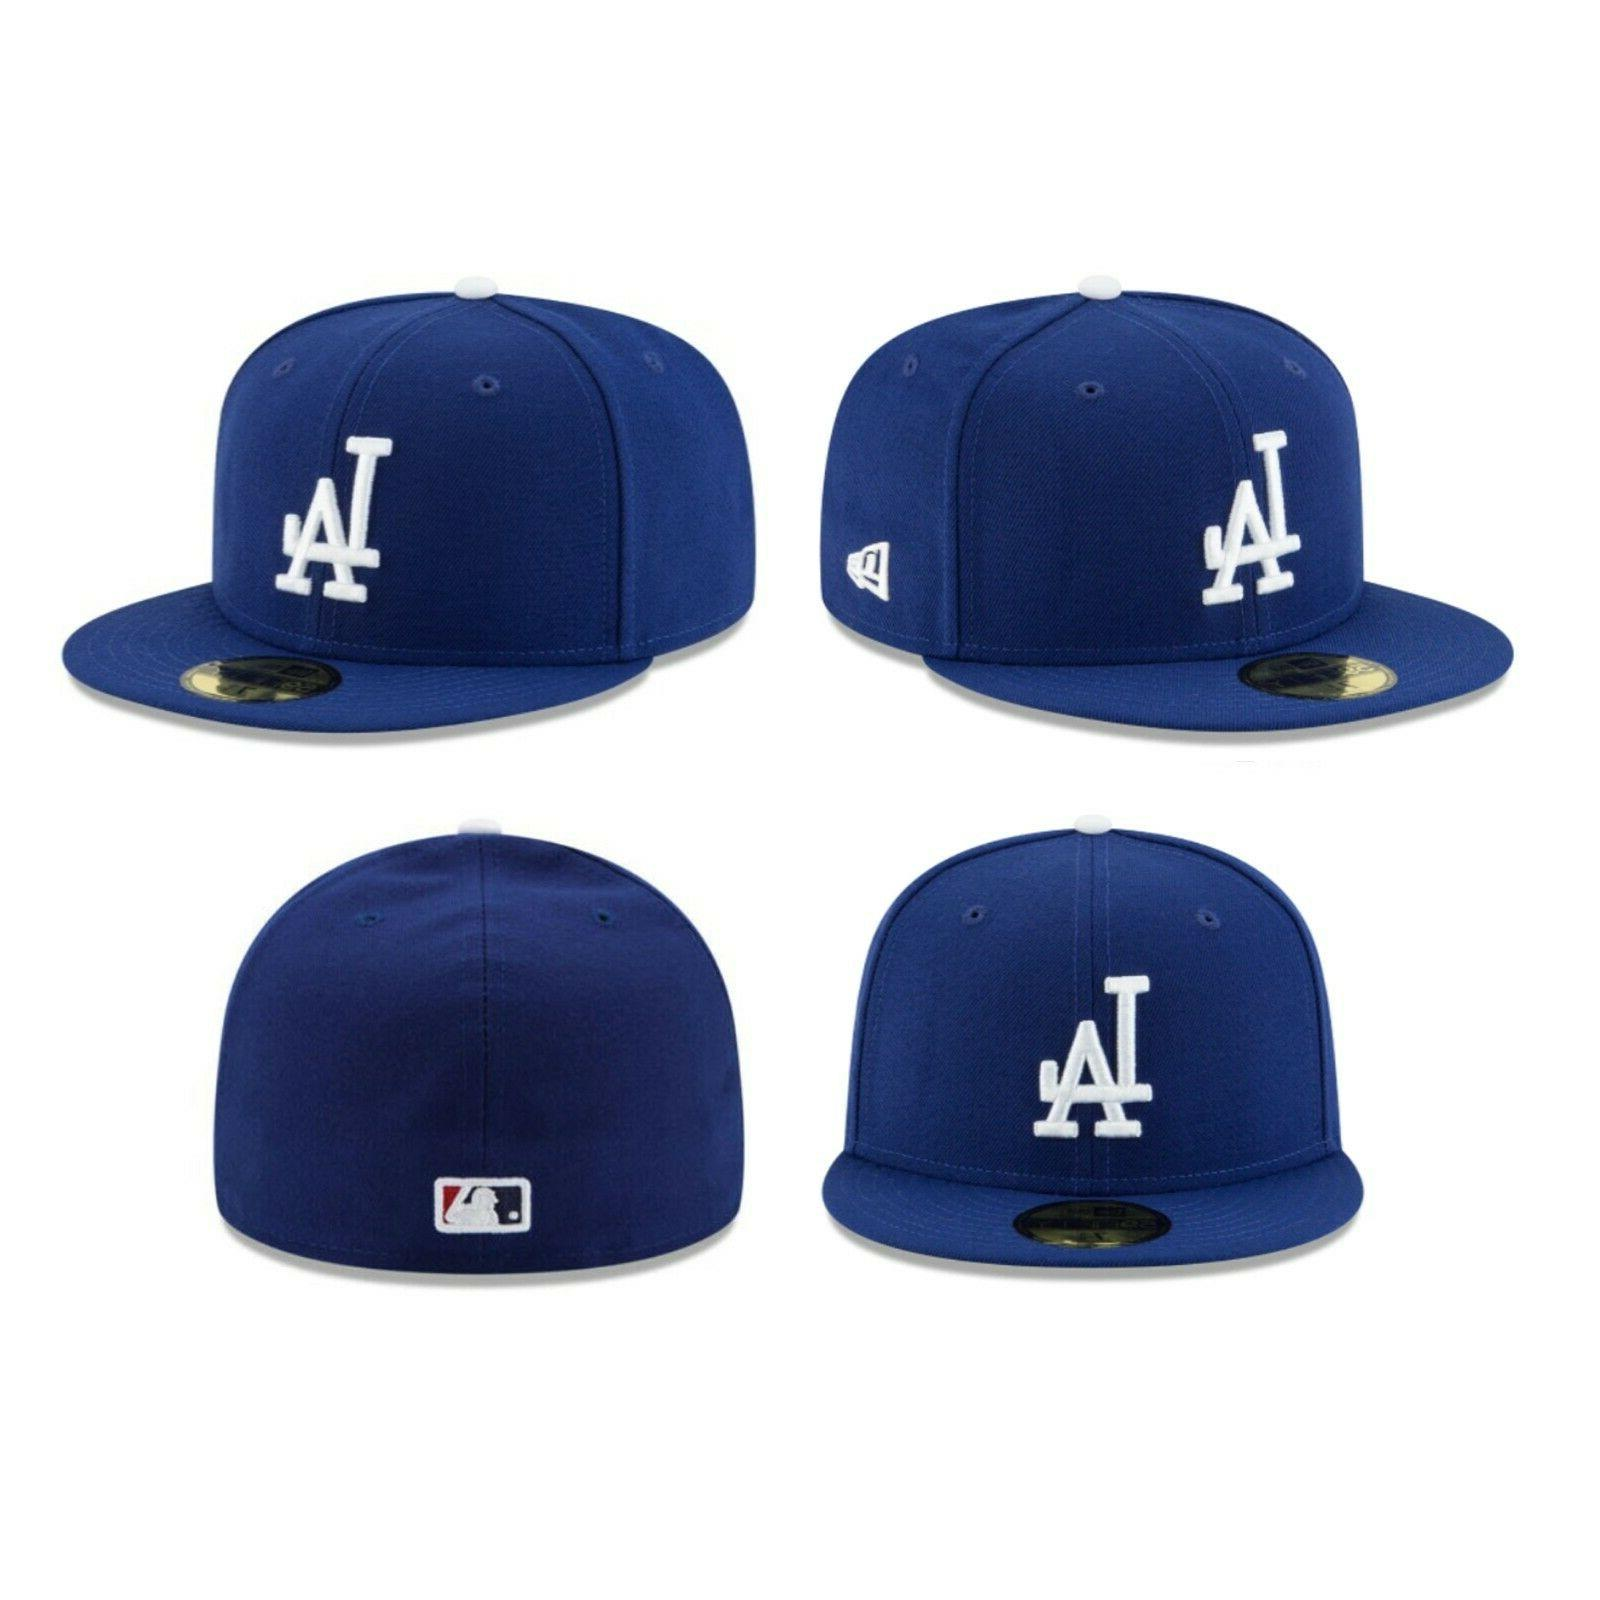 Los MLB Authentic 59FIFTY Fitted Cap 5950 Hat